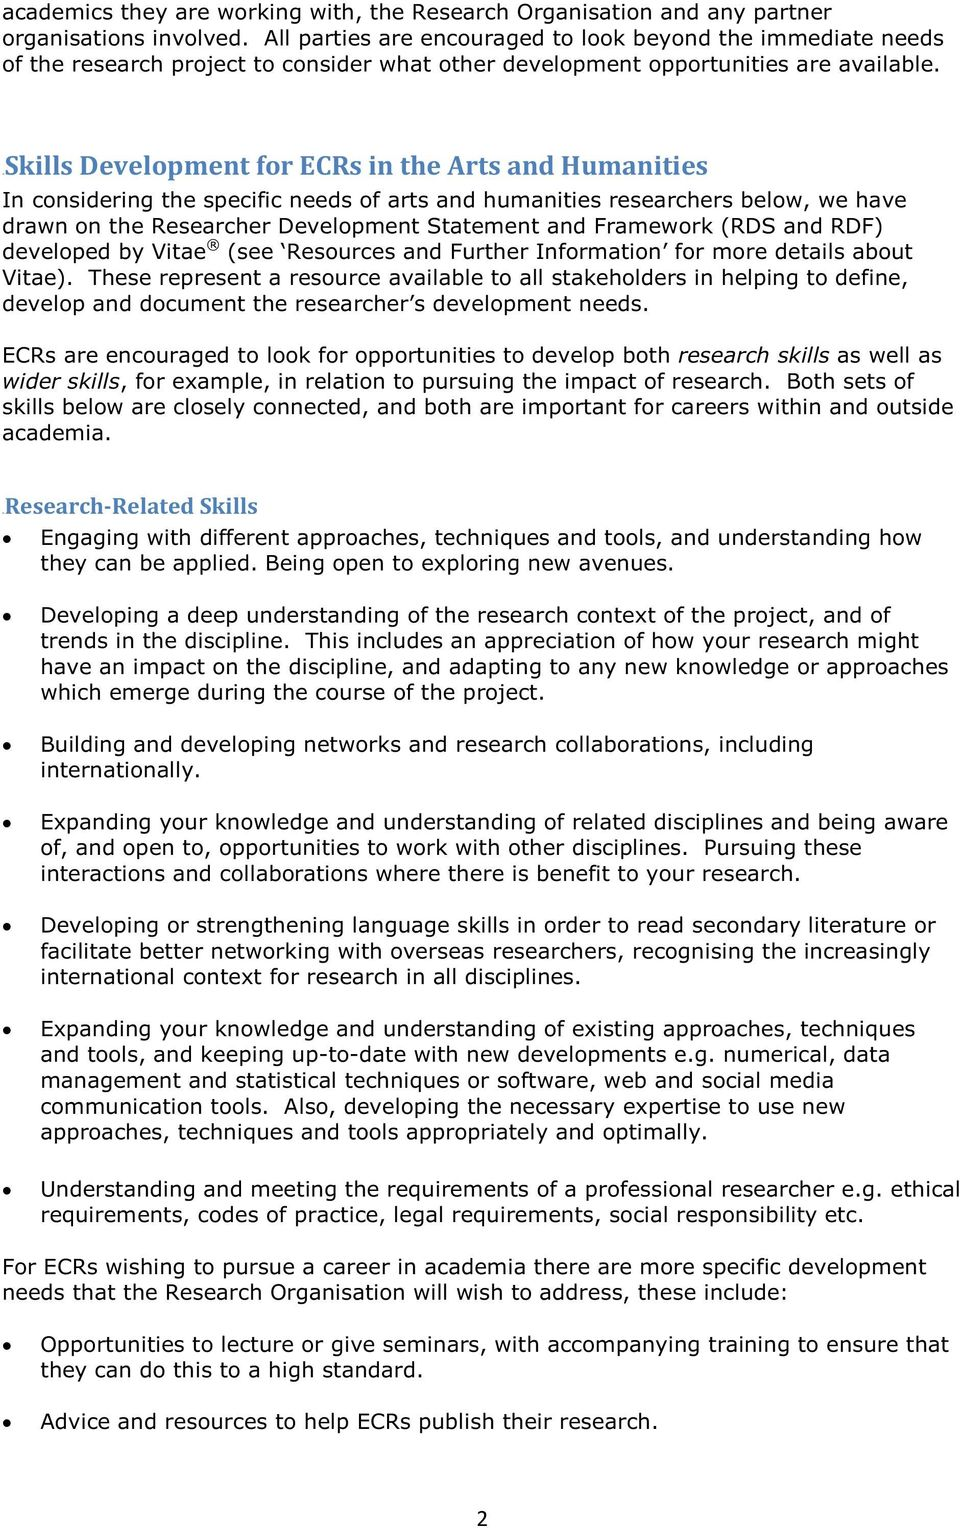 2BSkills Development for ECRs in the Arts and Humanities In considering the specific needs of arts and humanities researchers below, we have drawn on the Researcher Development Statement and